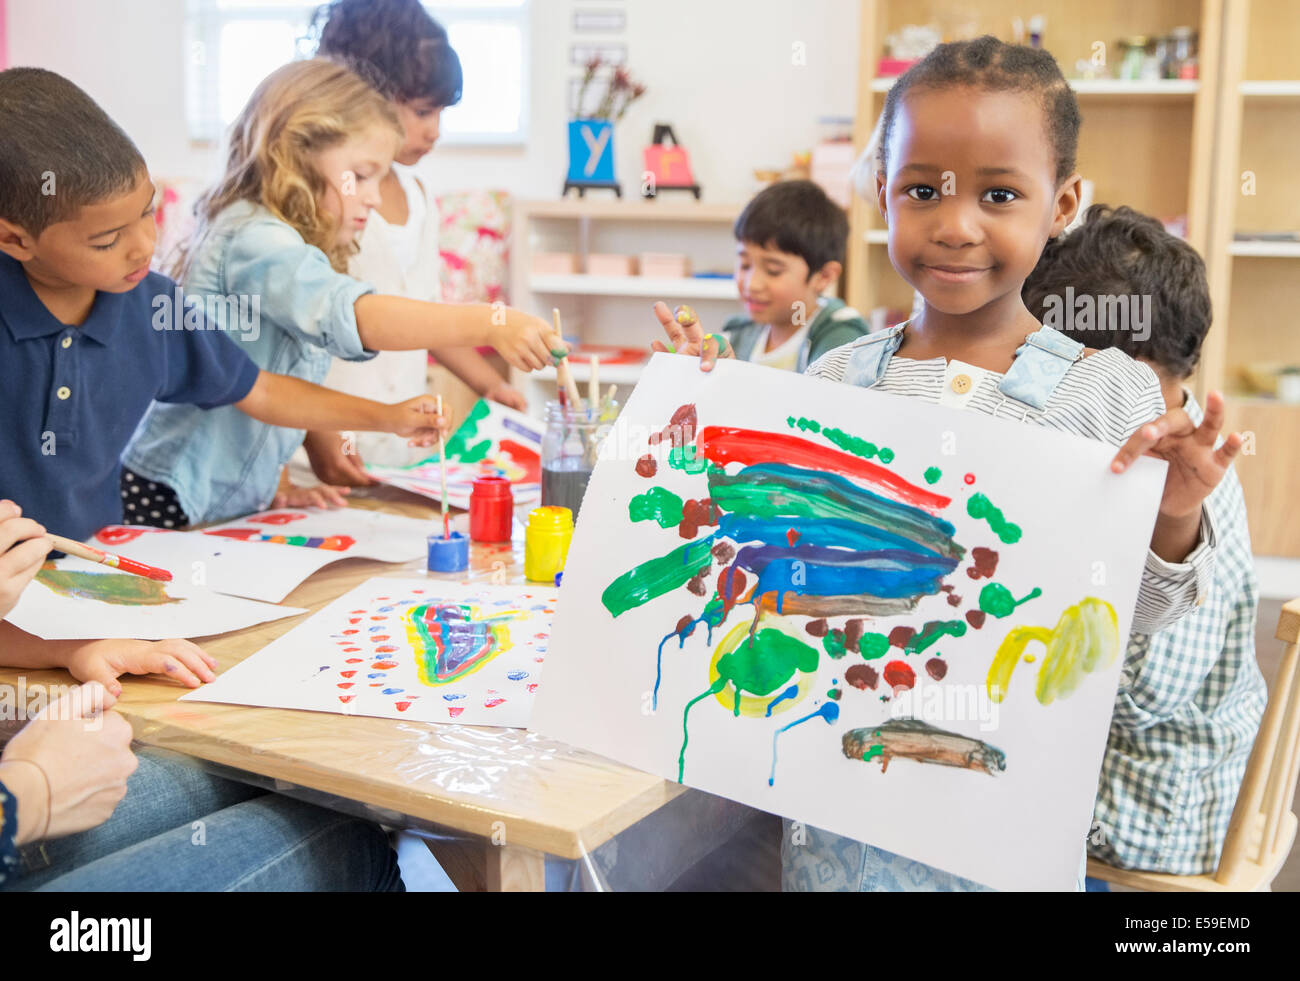 Student showing off finger painting in classroom - Stock Image